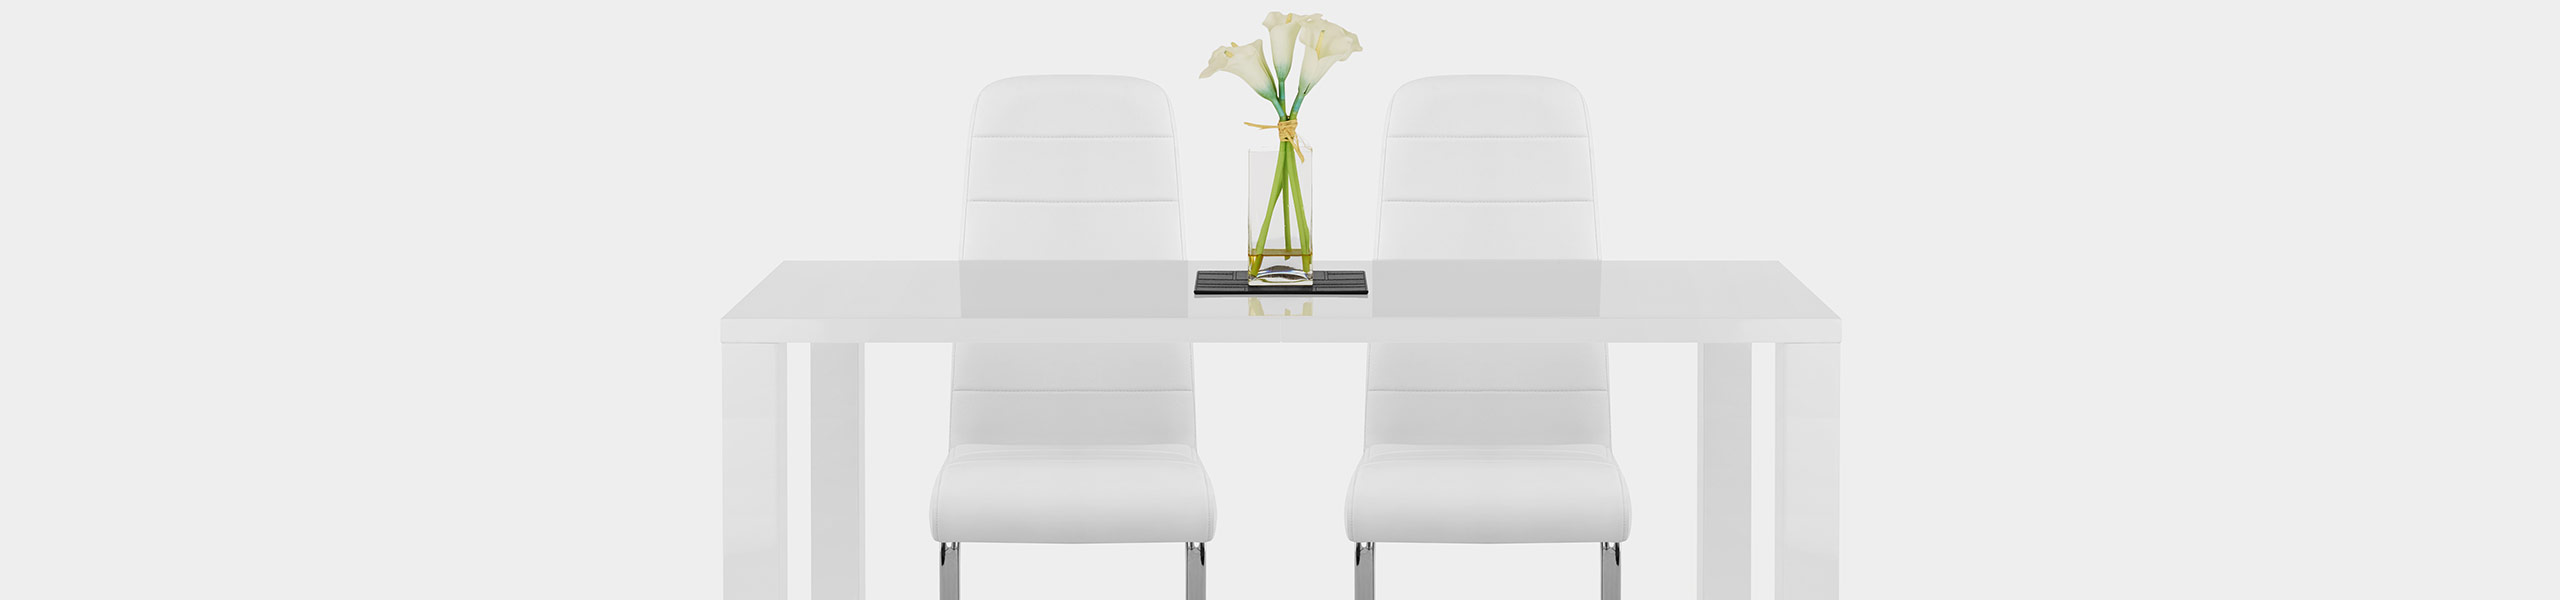 Monet Dining Chair White Video Banner